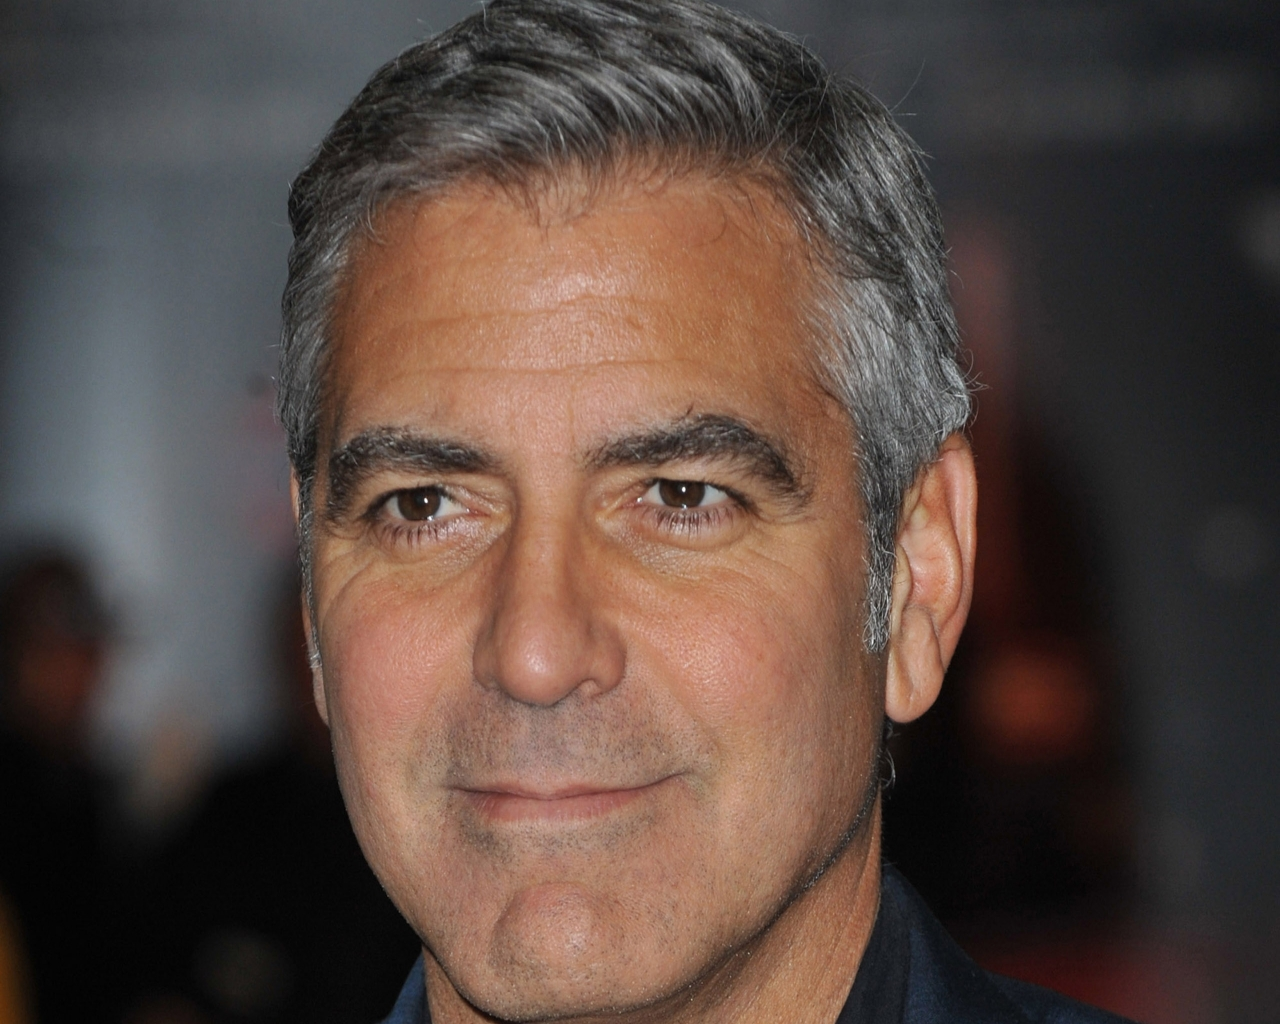 george clooney - photo #38